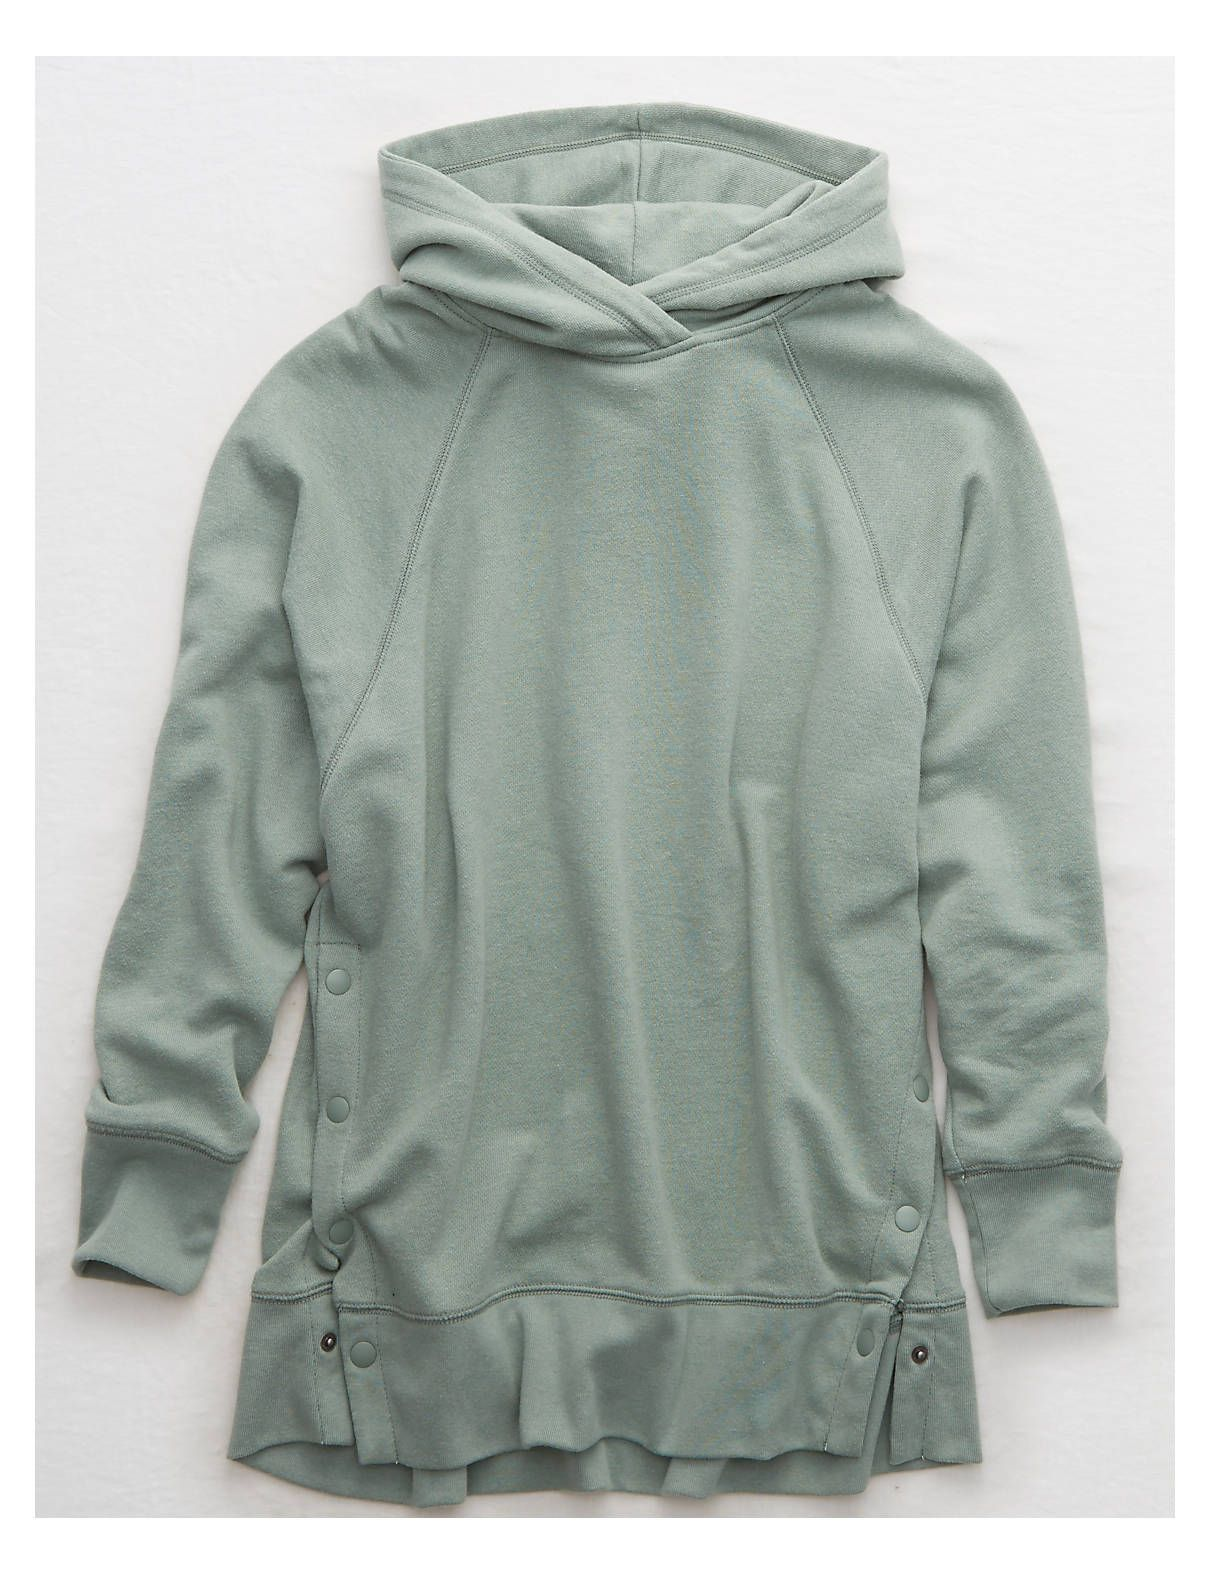 Aerie Side Snap City Hoodie Overcast Green American Eagle Outfitters Hoodies Snap Hoodie Mens Outfitters [ 1575 x 1211 Pixel ]